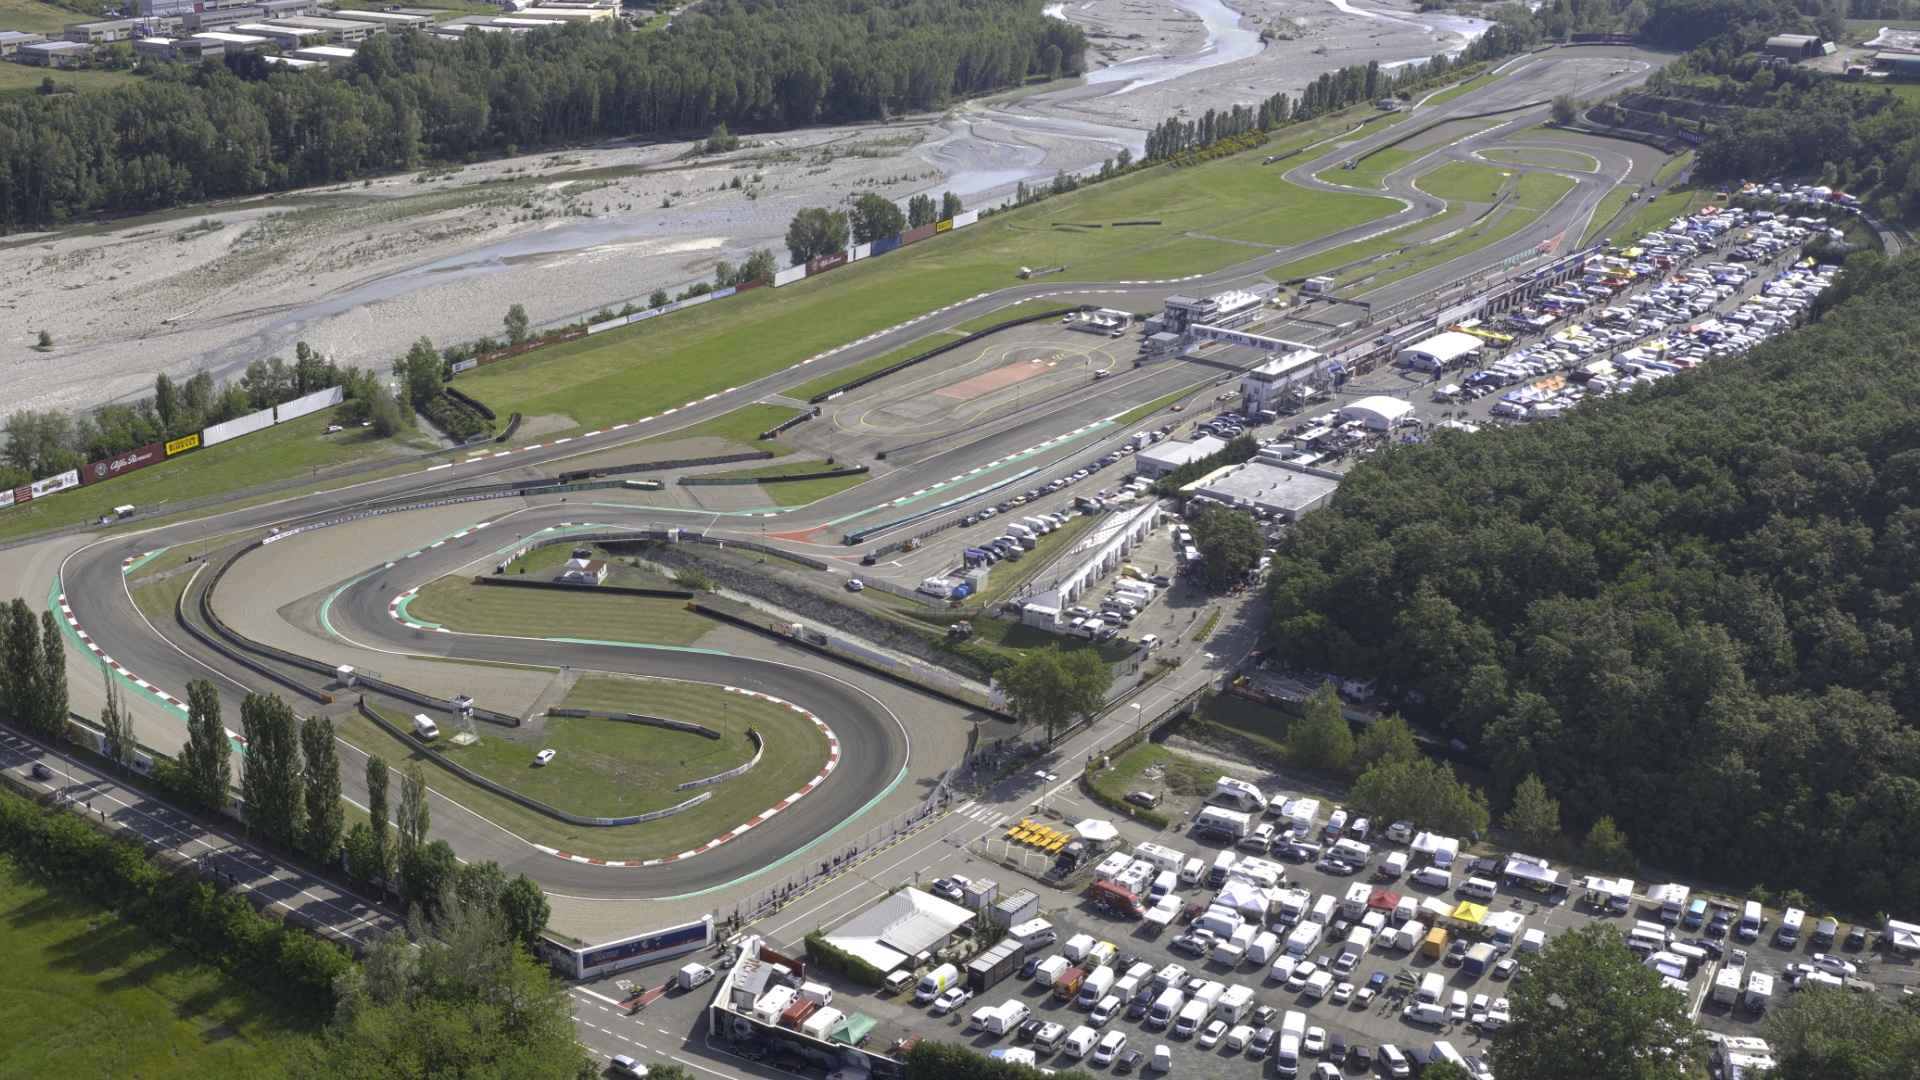 Varano circuit: the 2020 schedule of events and races.